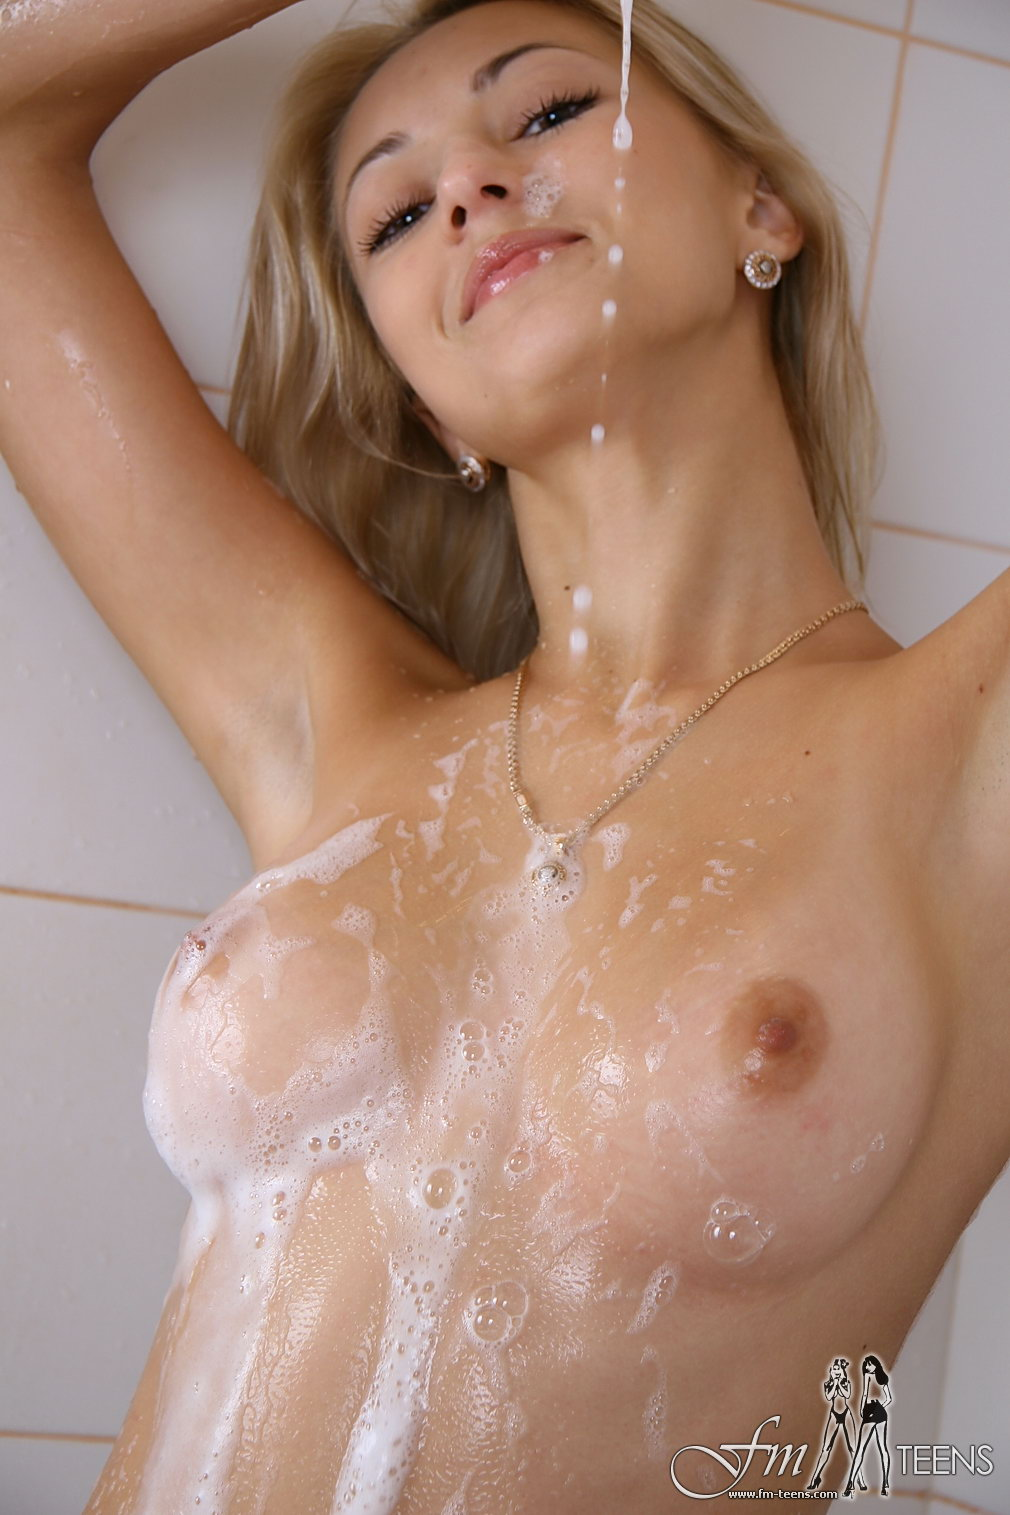 The soap girls nude